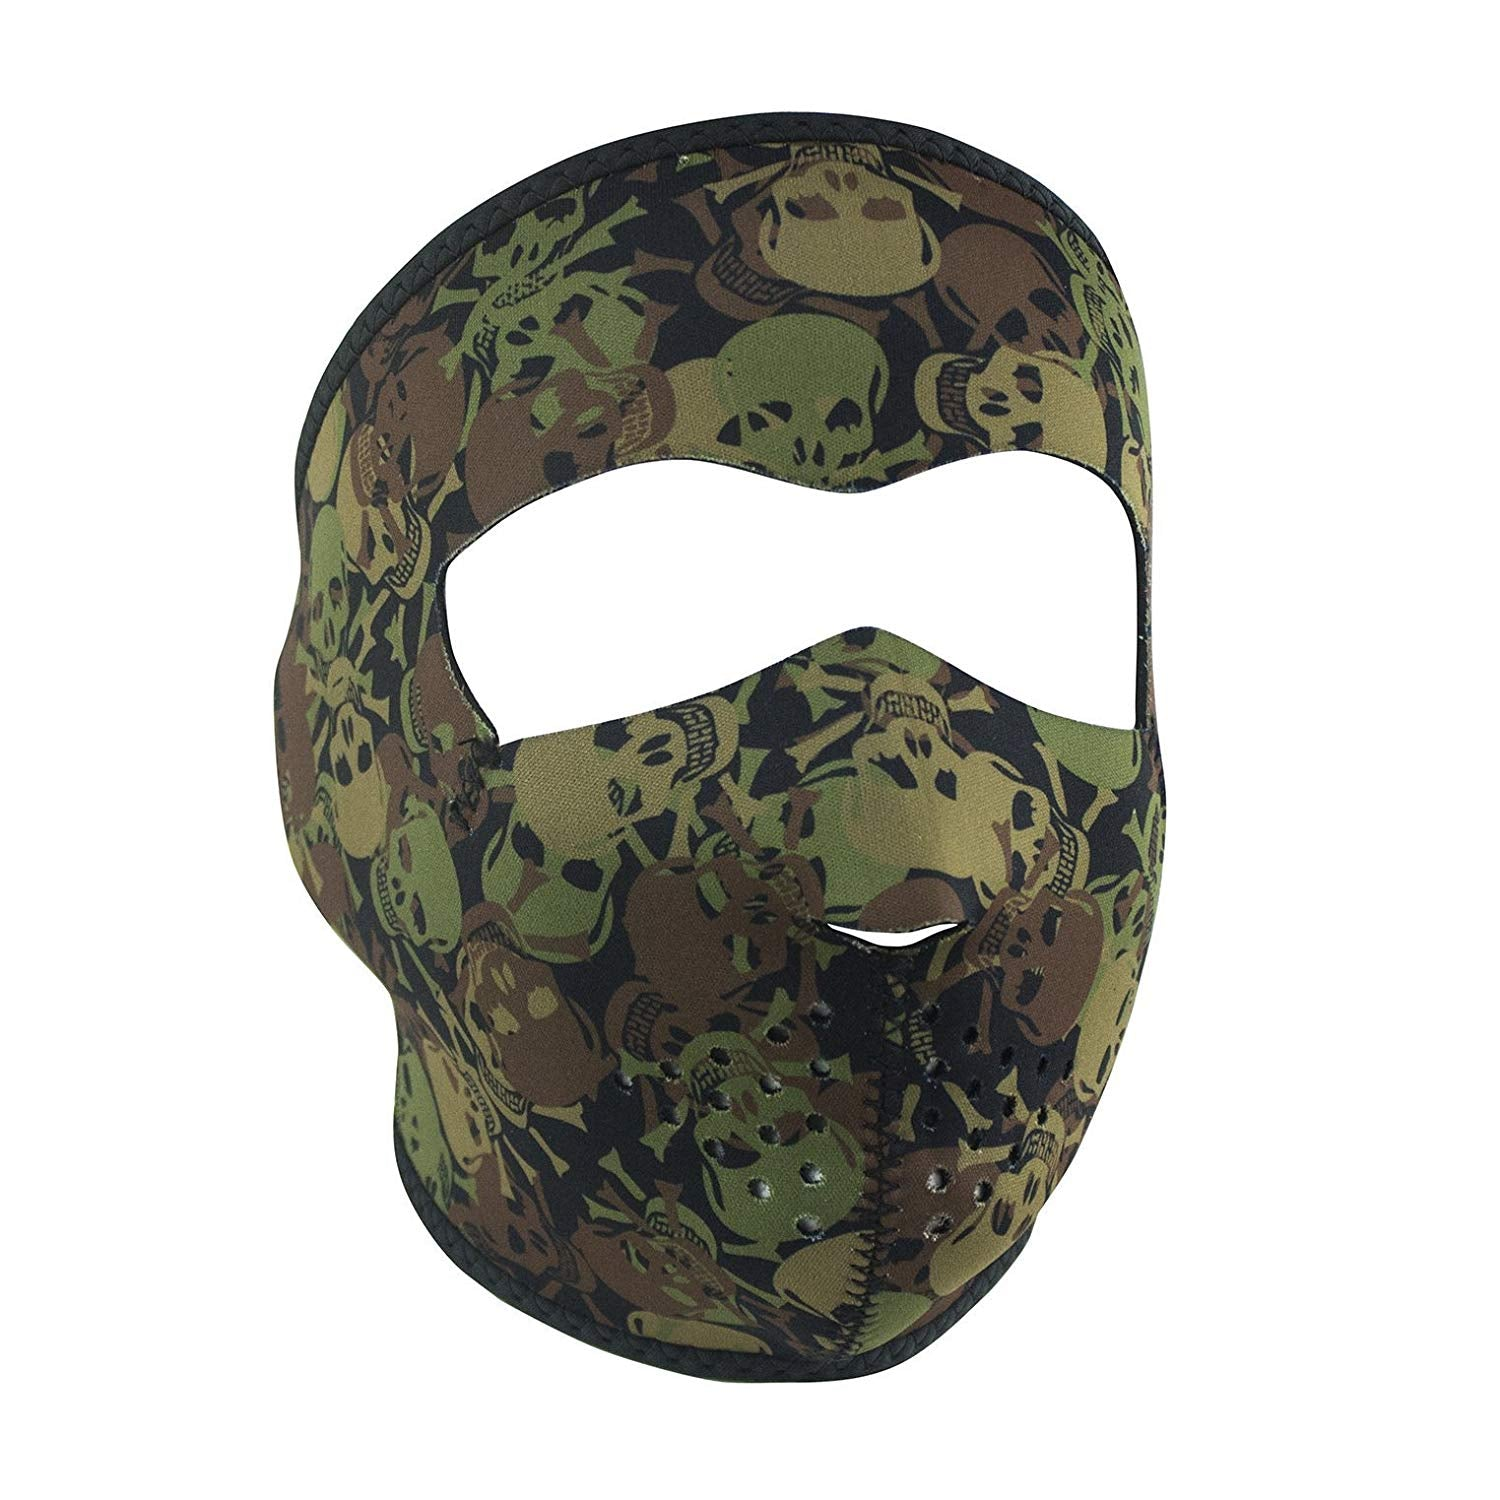 Zan Headgear WNFM418 Neoprene Face Mask